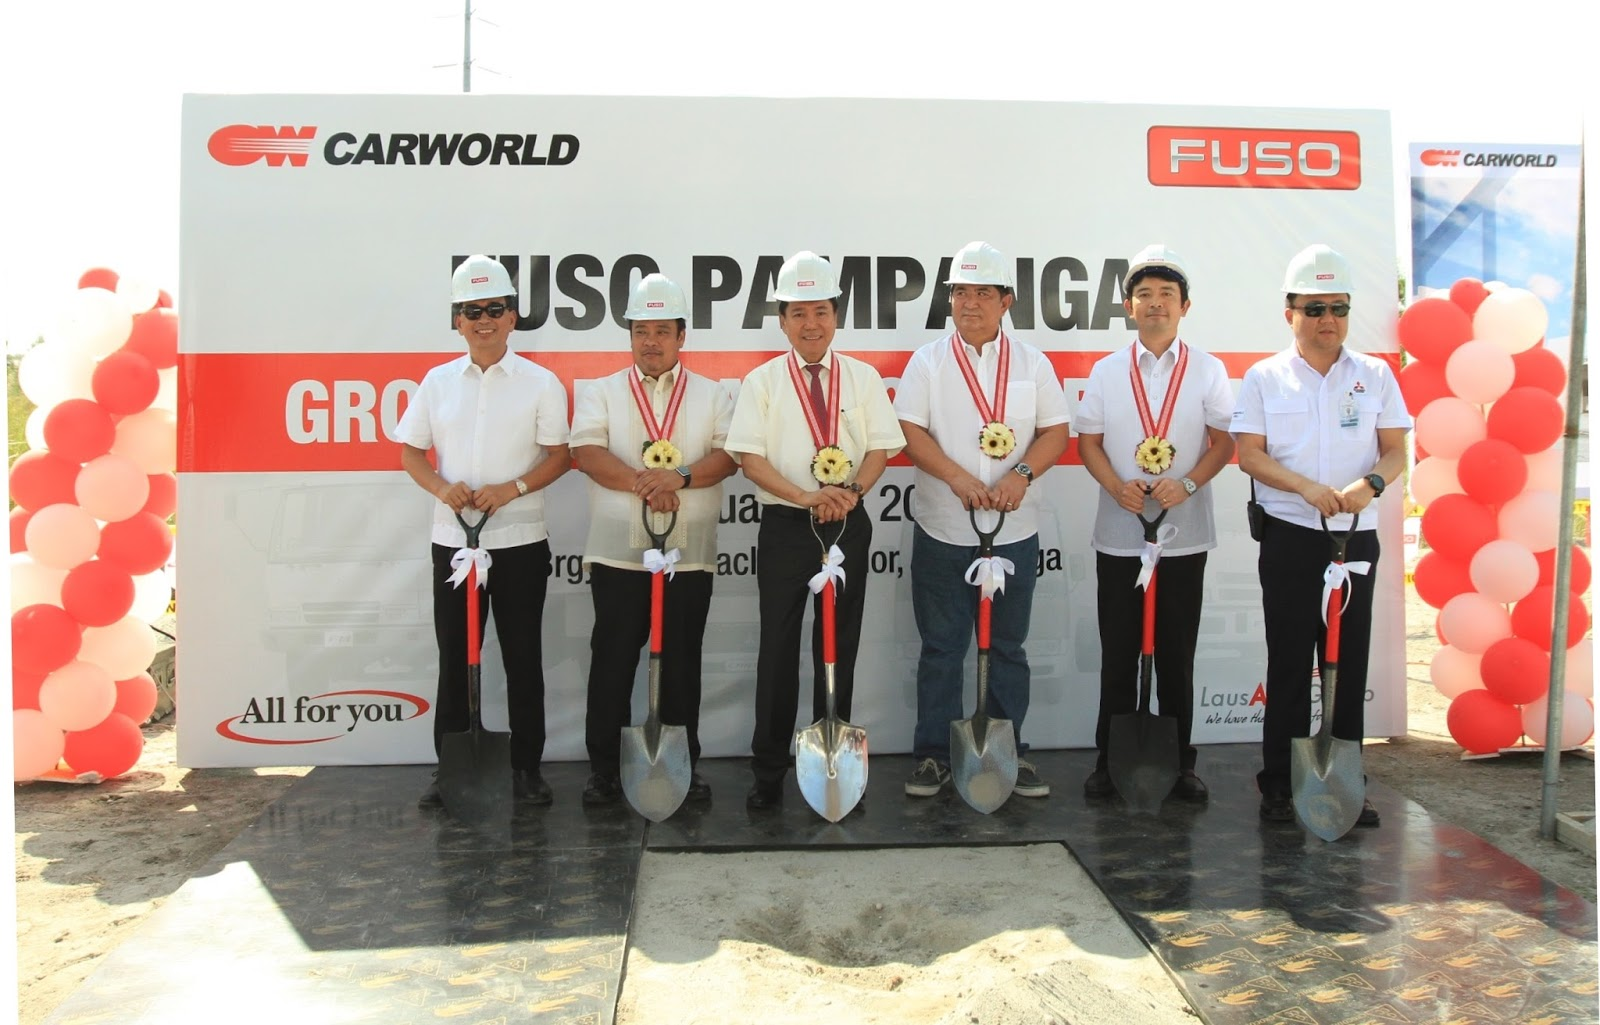 Carworld, Inc. Breaks Ground for FUSO Pampanga